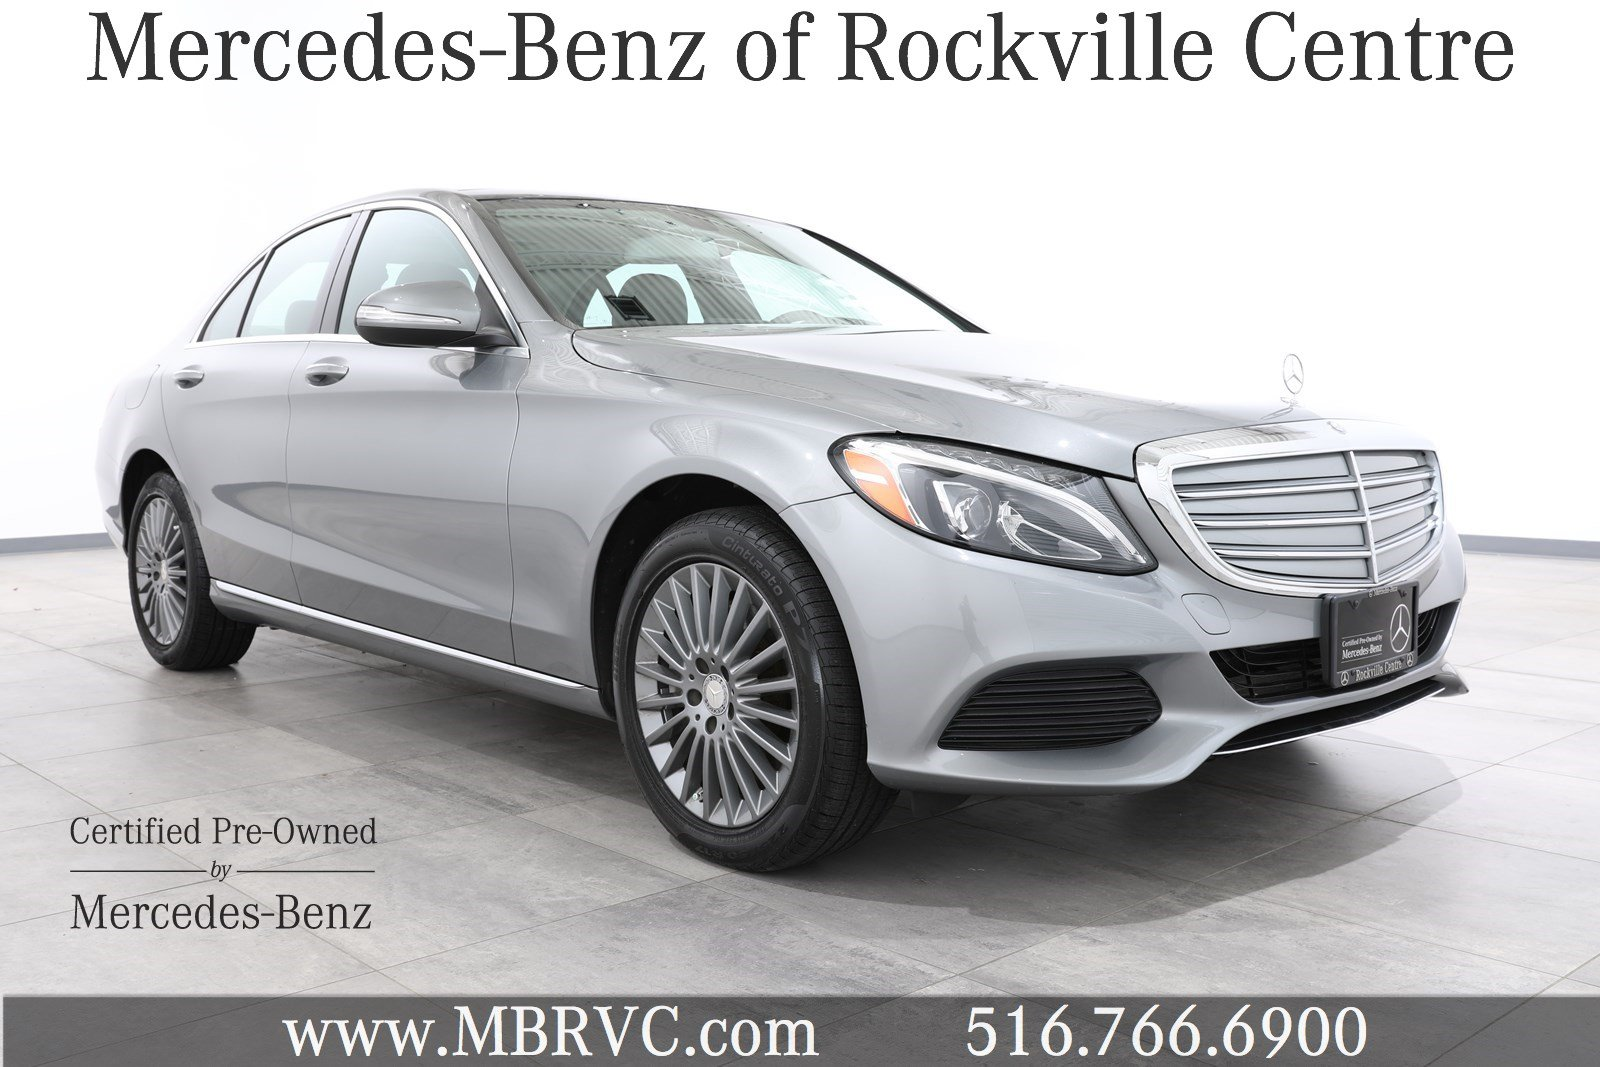 Certified pre owned 2015 mercedes benz c class 4dr sdn c for Mercedes benz rockville centre service